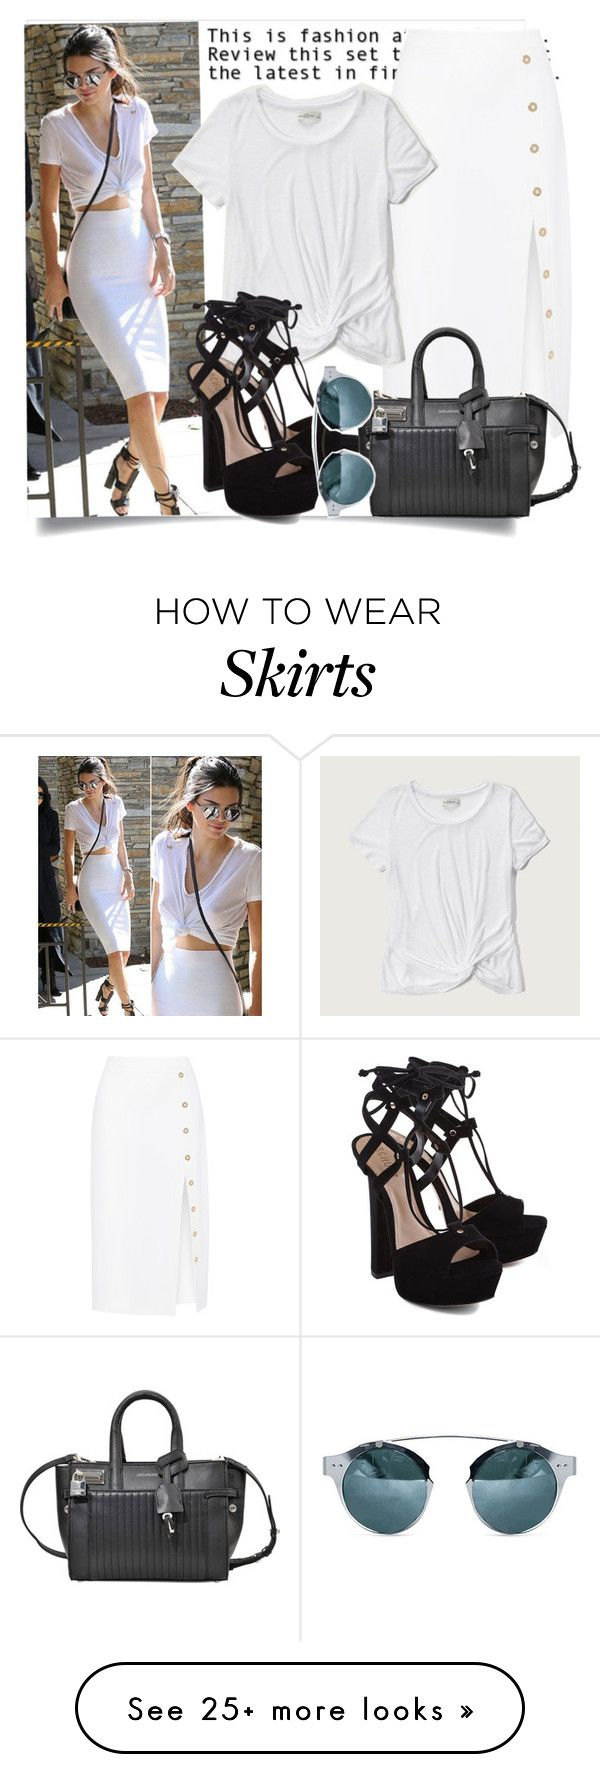 """Get The Look - Kendall Jenner"" by hattie4palmerstone on Polyvore featuring Cushnie Et Ochs, Abercrombie & Fitch, Schutz, Zadig & Voltaire, GetTheLook, kendalljenner and polyvoreeditorial"